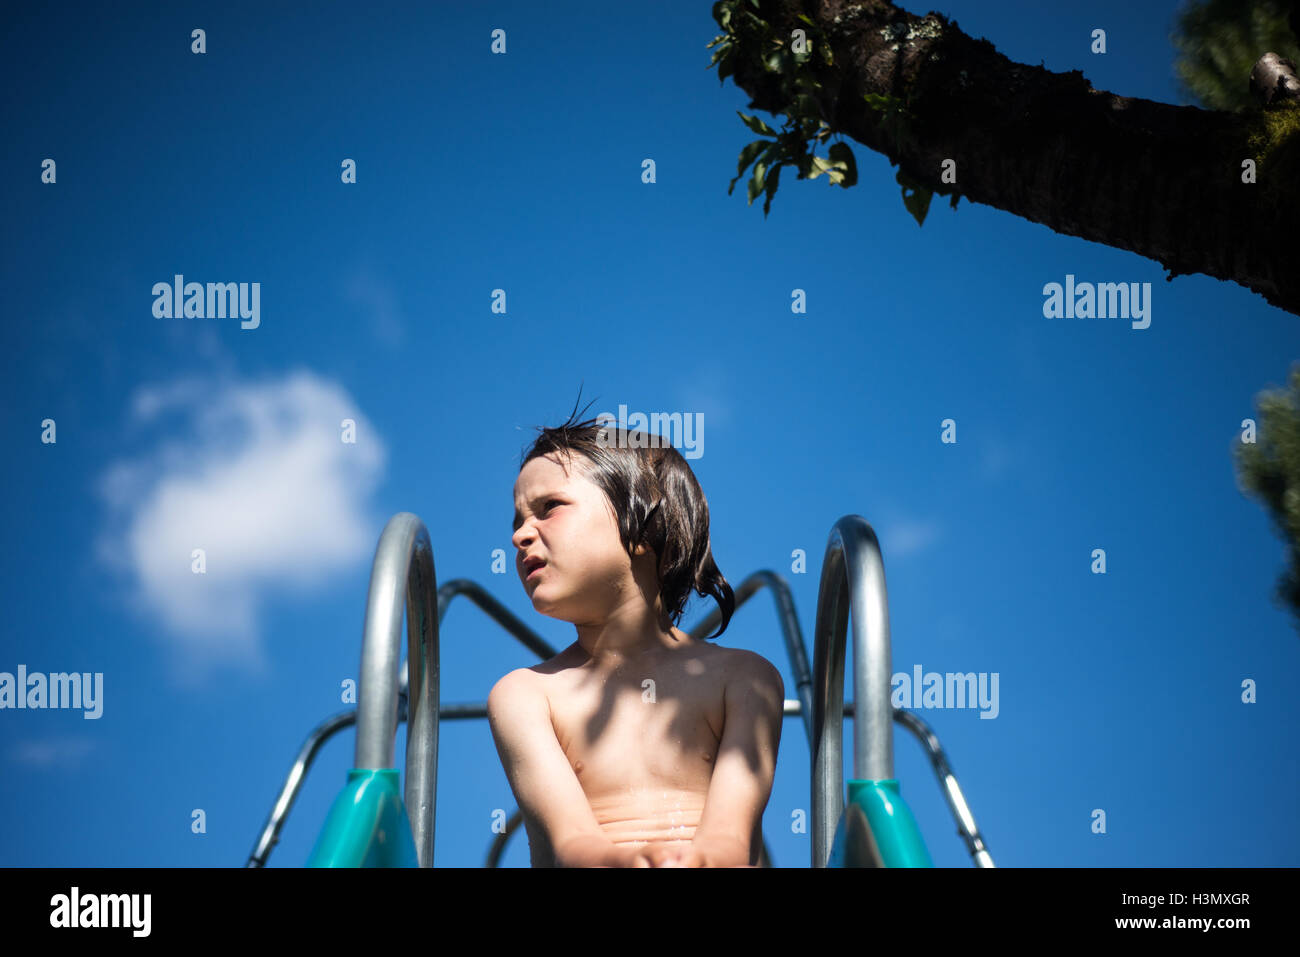 Boy on top of playground slide looking away - Stock Image